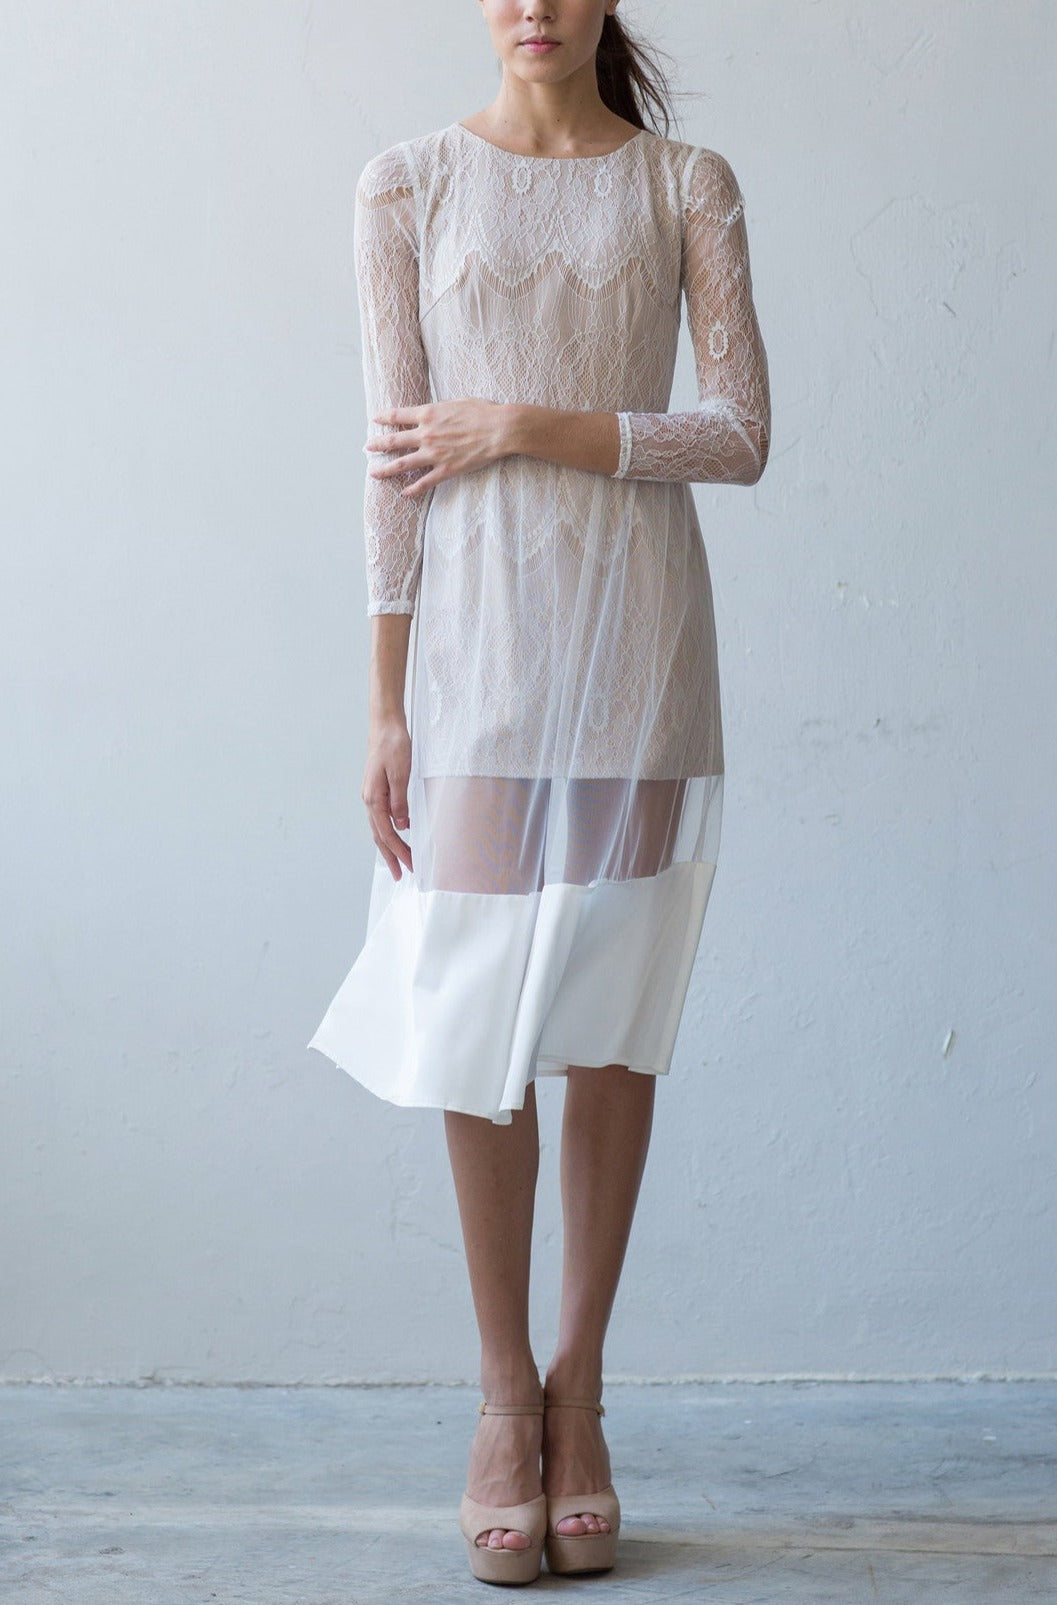 Long sleeve full-lace dress in cream